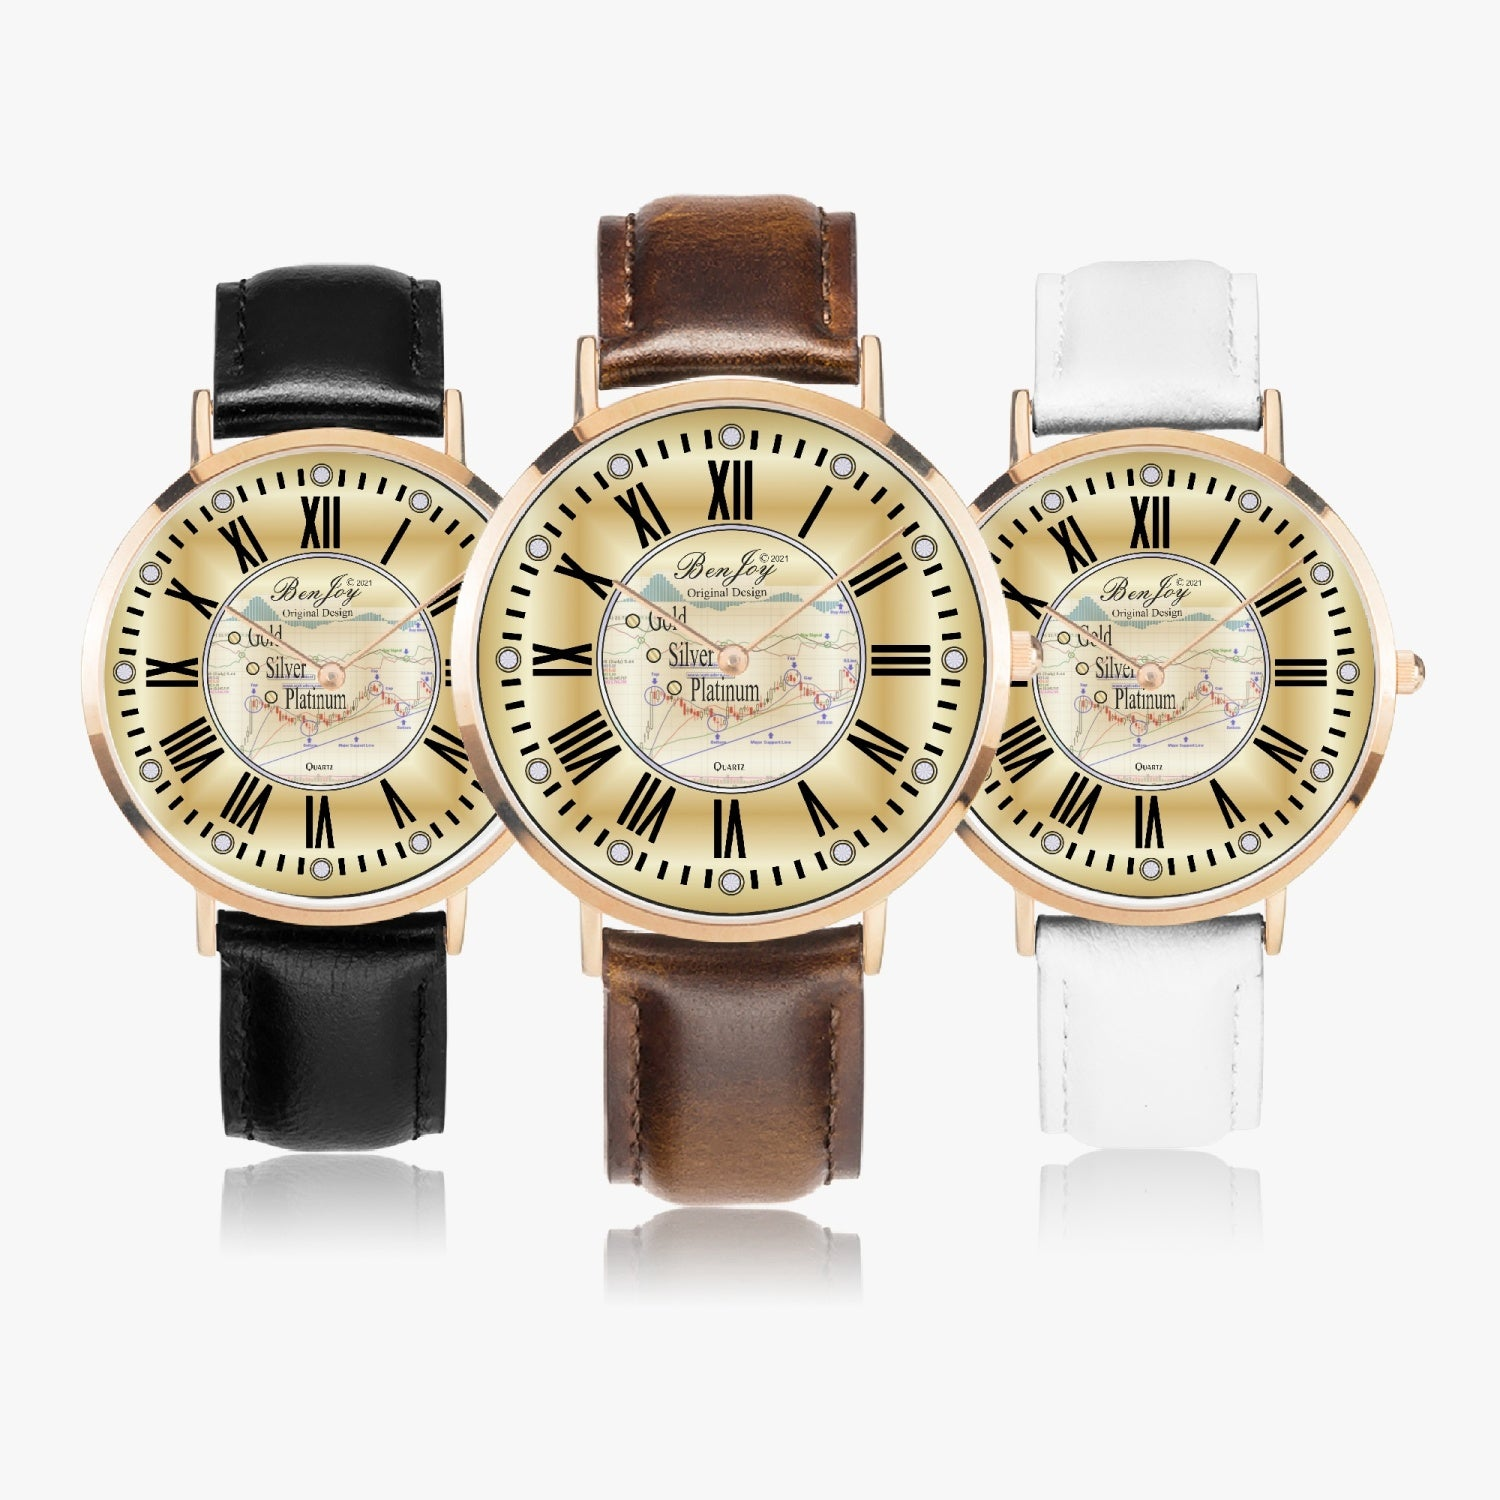 Stock Chart Ultra-Thin Leather Strap Quartz Watch (Rose Gold) By BenJoy